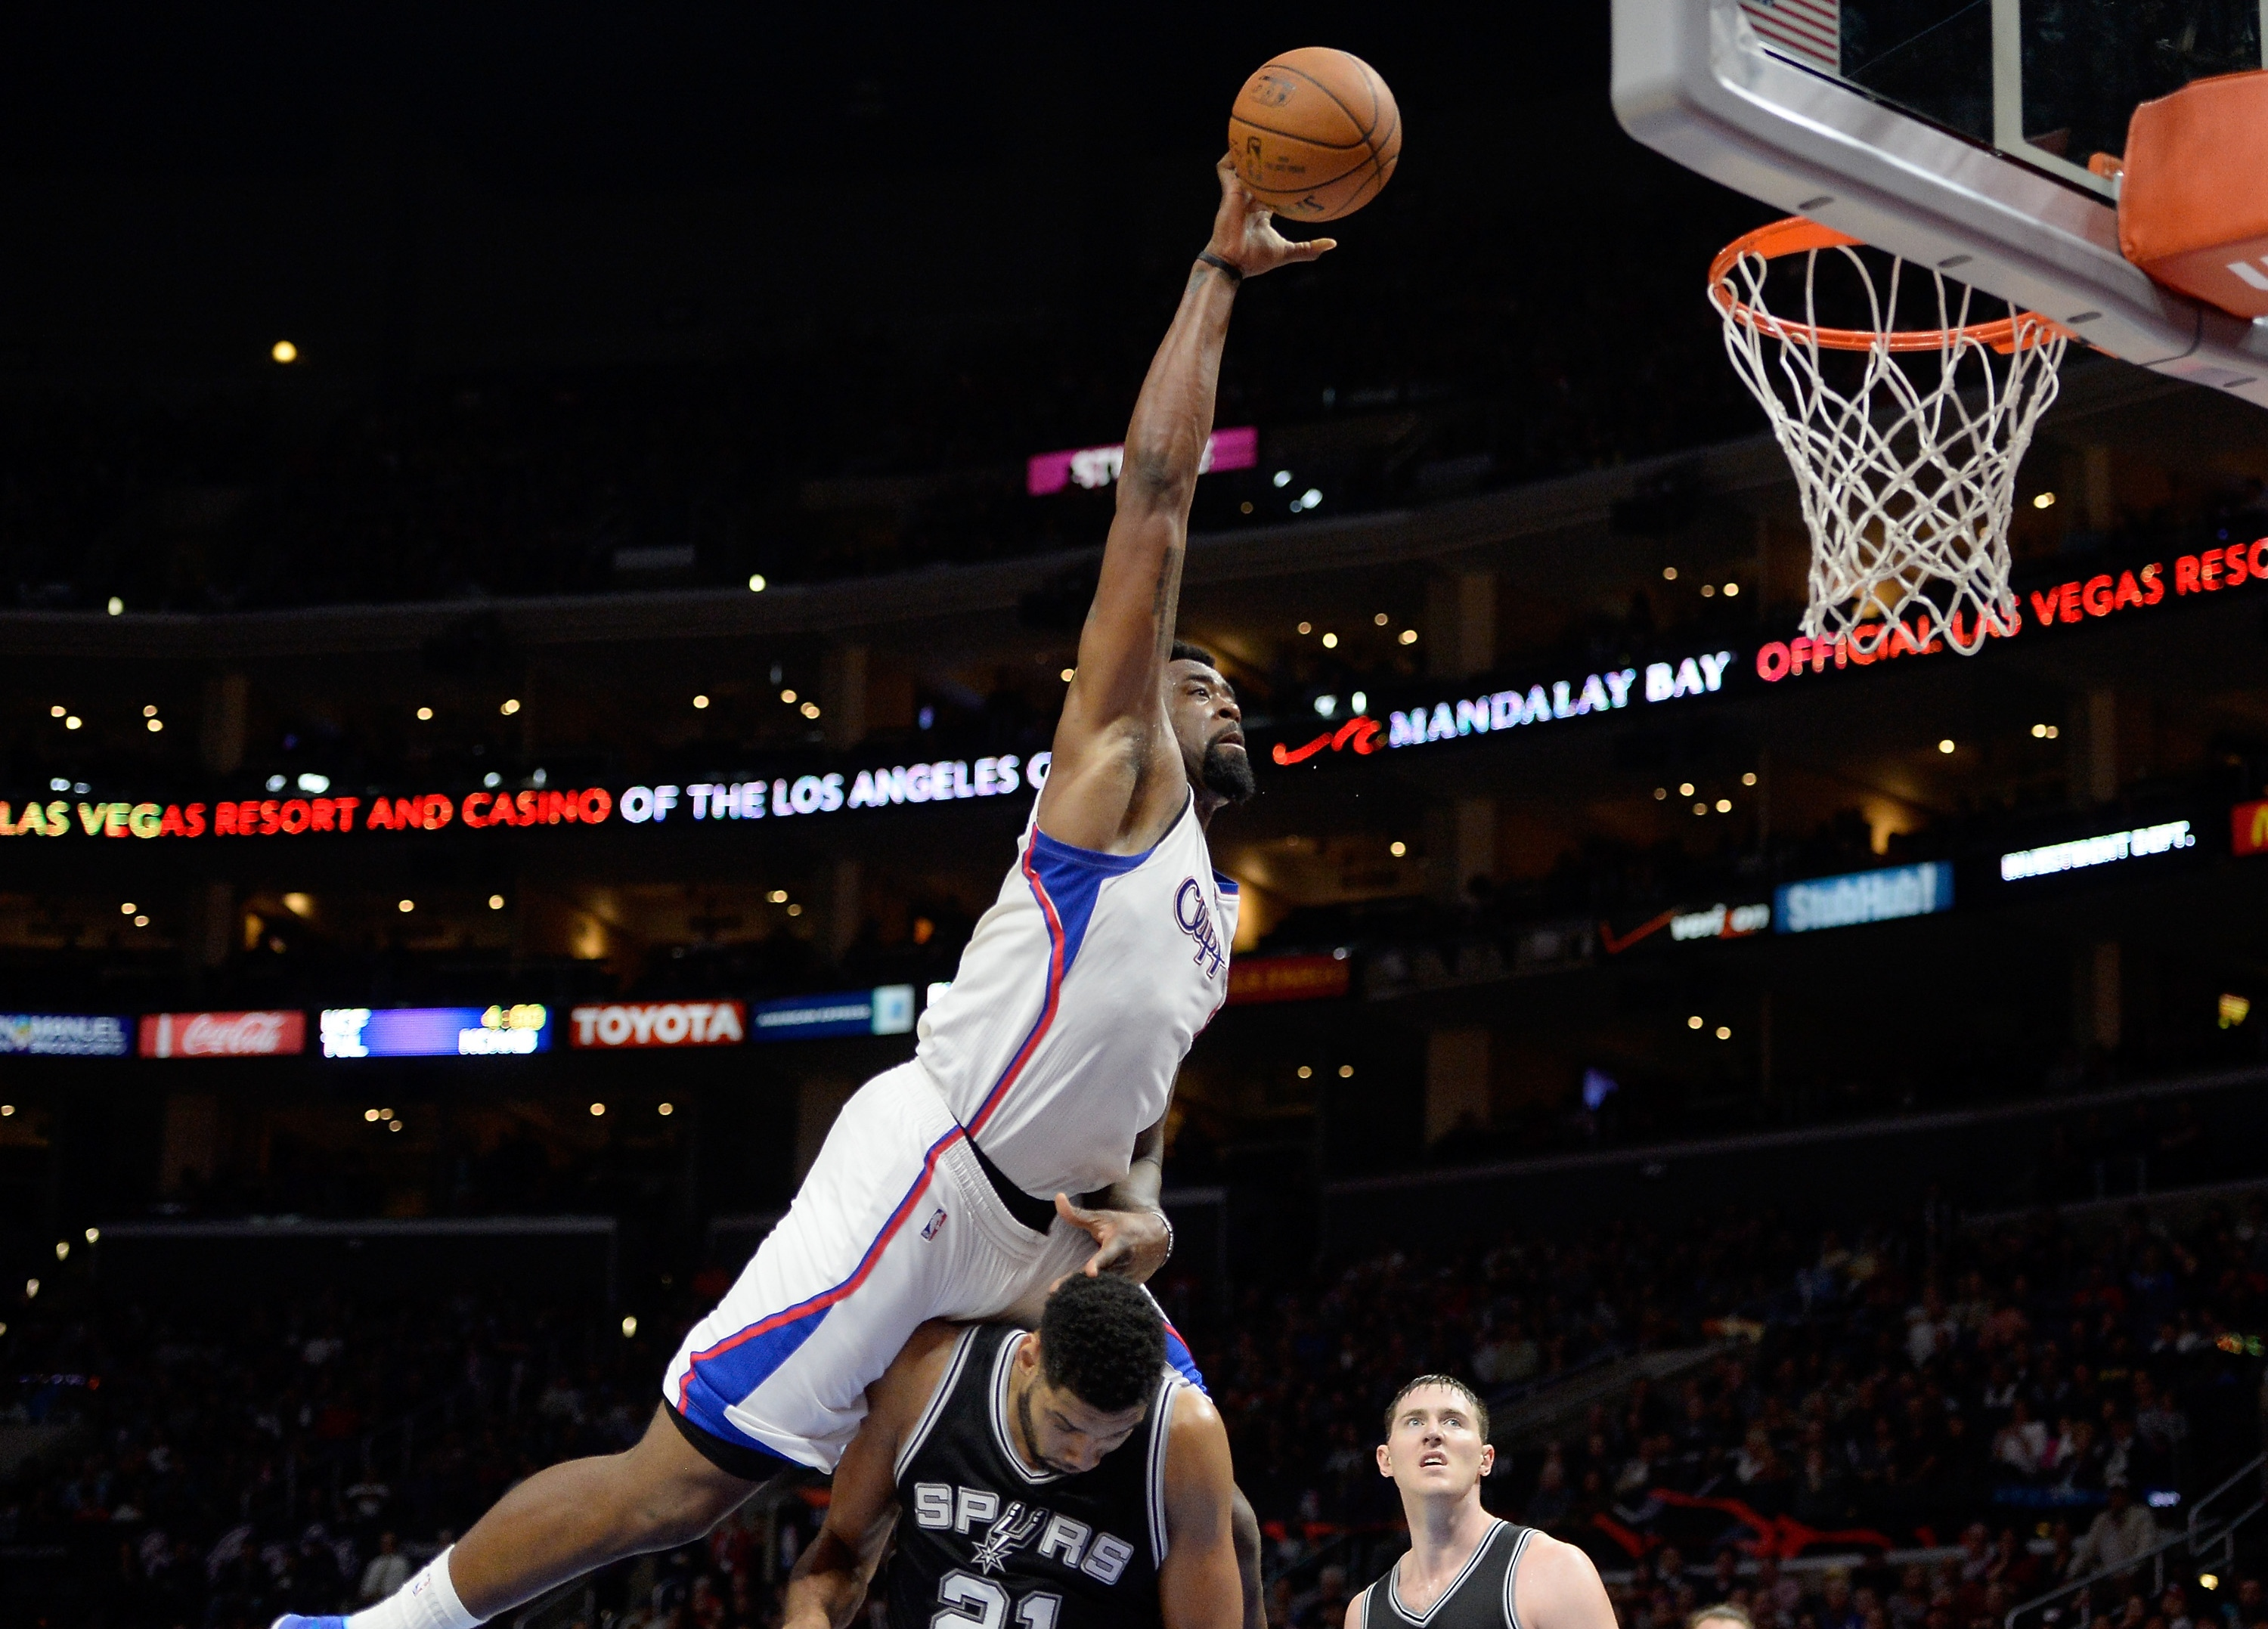 LOS ANGELES, CA - FEBRUARY 19:  DeAndre Jordan #6 of the Los Angeles Clippers is fouled by Tim Duncan #21 of the San Antonio Spurs on an attempted dunk at Staples Center on February 19, 2015 in Los Angeles, California.  NOTE TO USER: User expressly acknowledges and agrees that, by downloading and or using this Photograph, user is consenting to the terms and condition of the Getty Images License Agreement.  (Photo by Harry How/Getty Images)